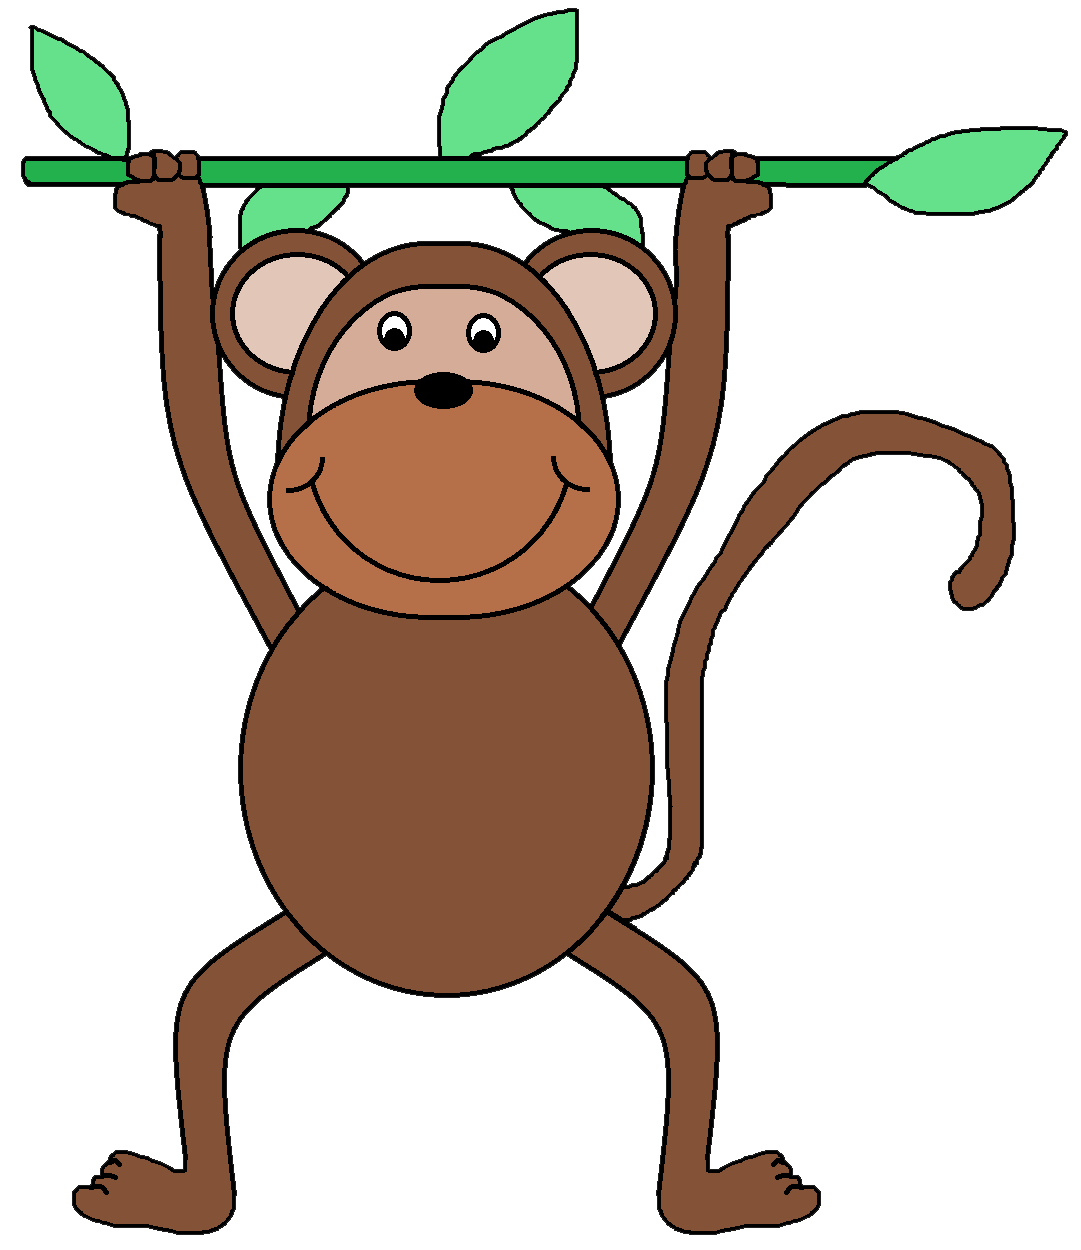 1081x1250 Monkey Clip Art For Teachers Free Clipart Images 4